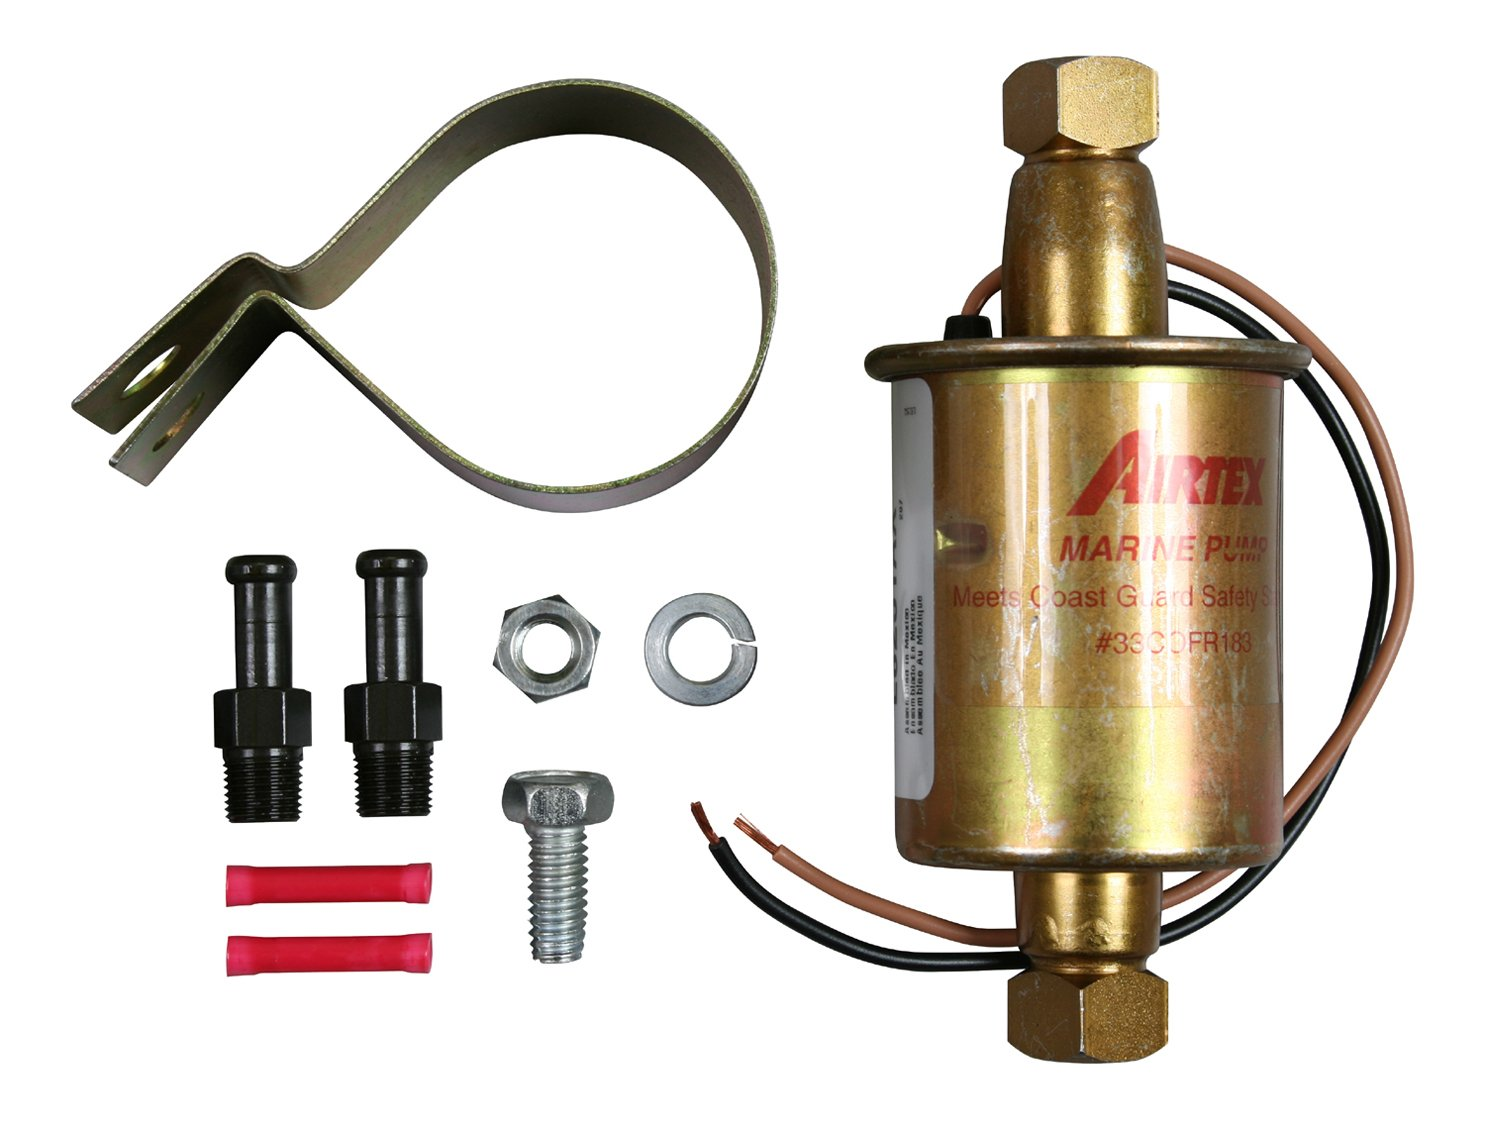 71An1Tq41cL._SL1485_ amazon com airtex e8251 universal solid state universal electric airtex fuel pump wiring diagram at bakdesigns.co